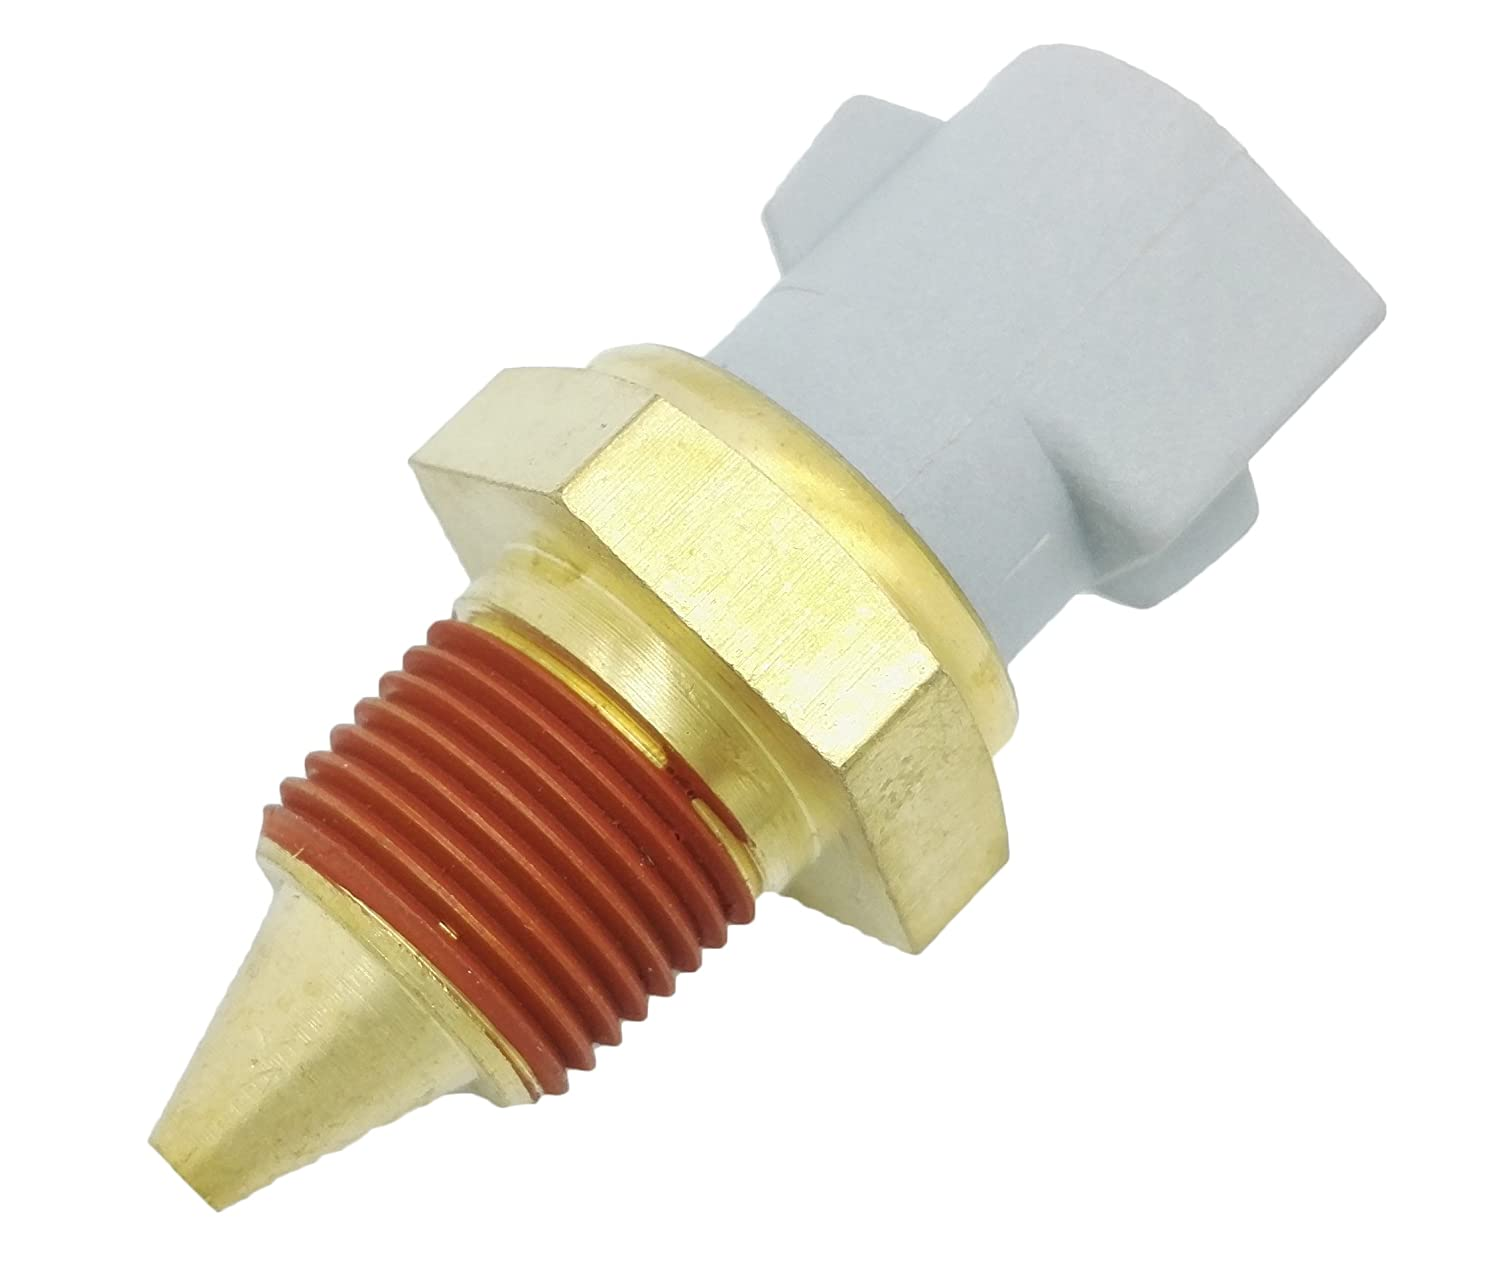 Engine Coolant Temperature Sensor for Ford E350 F250 Escort Mercury Mazda Lincoln Okay Motor Products